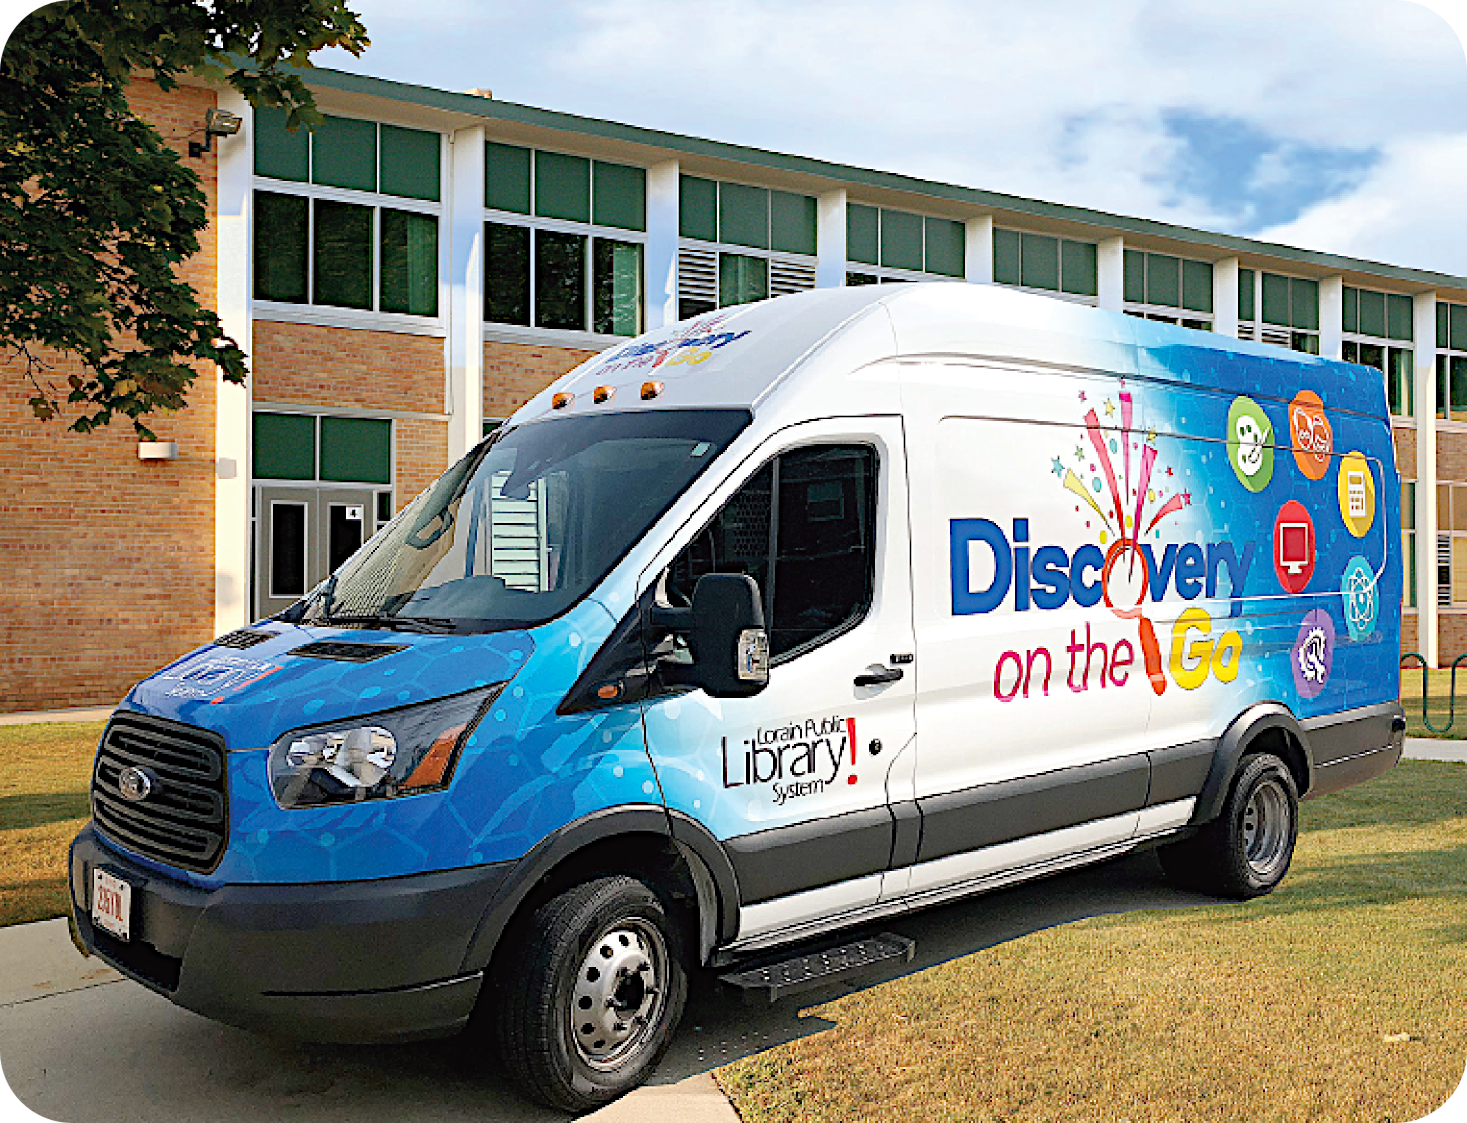 Photo of the Discovery on the Go Van